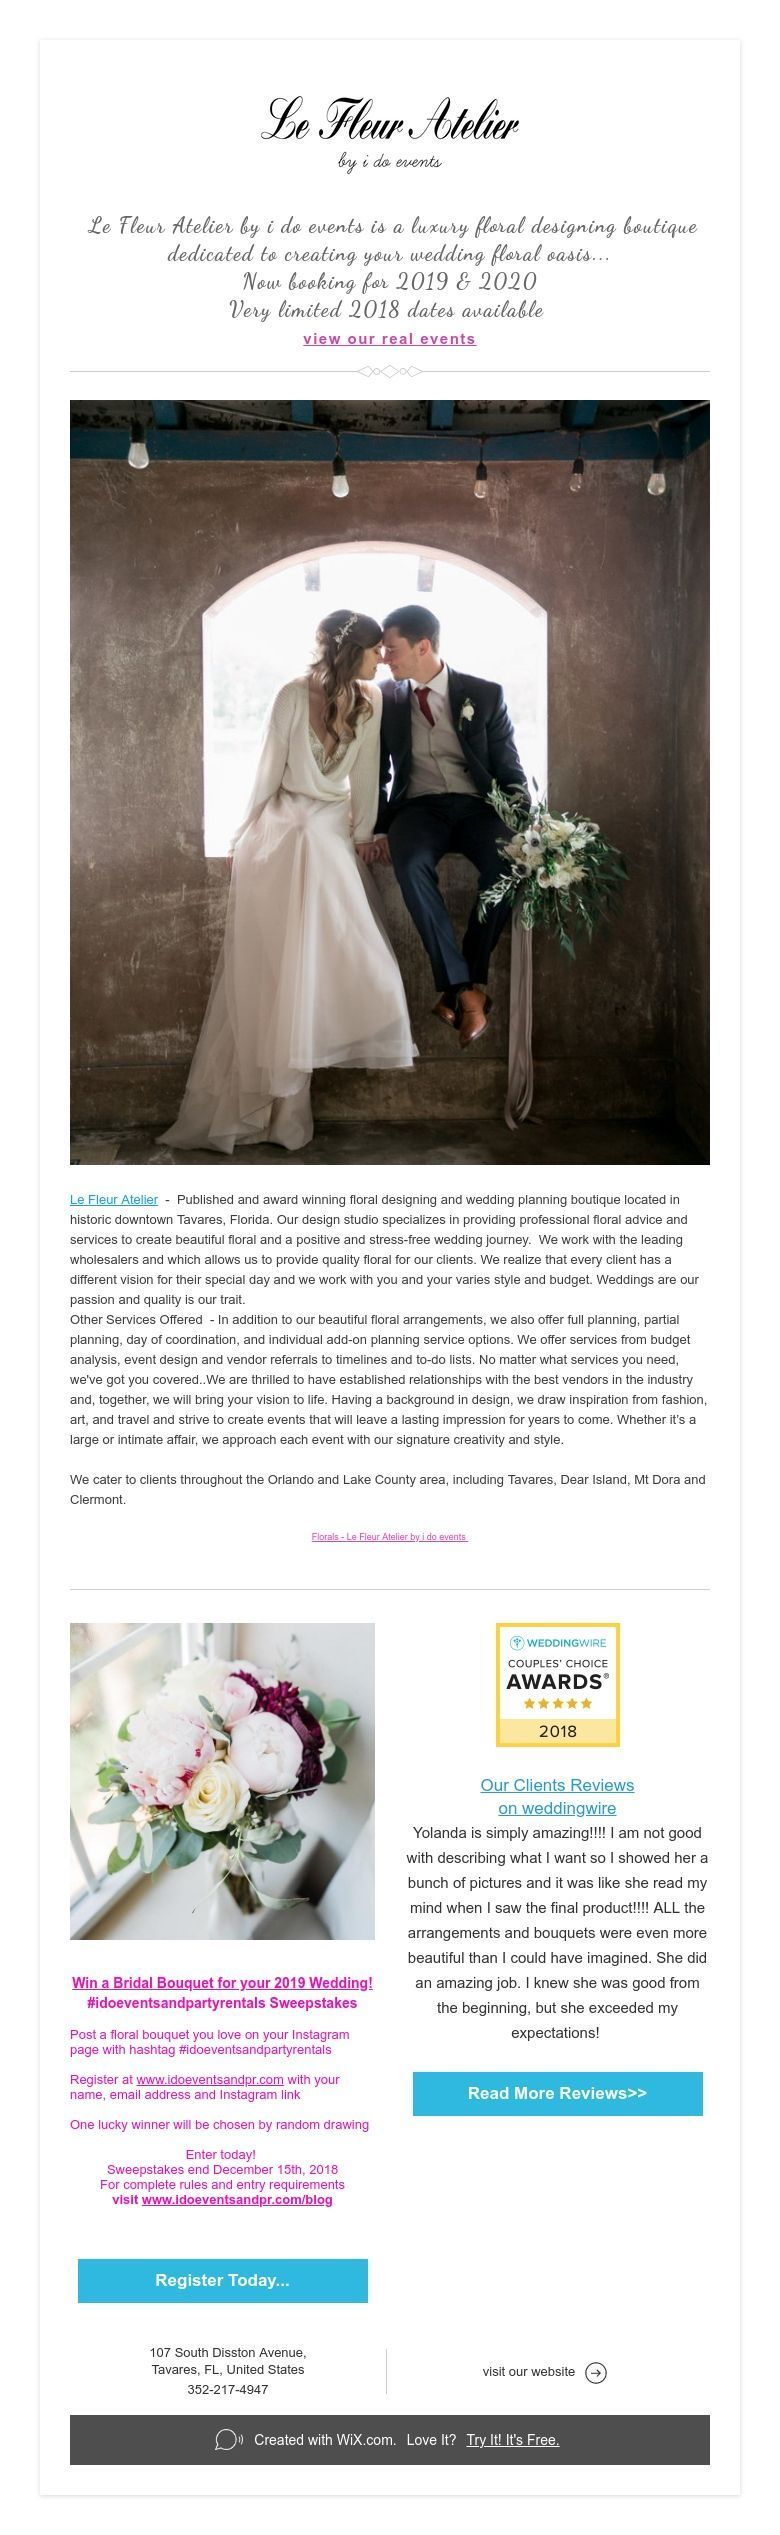 Le Fleur Atelier by i do events is a luxury floral designing